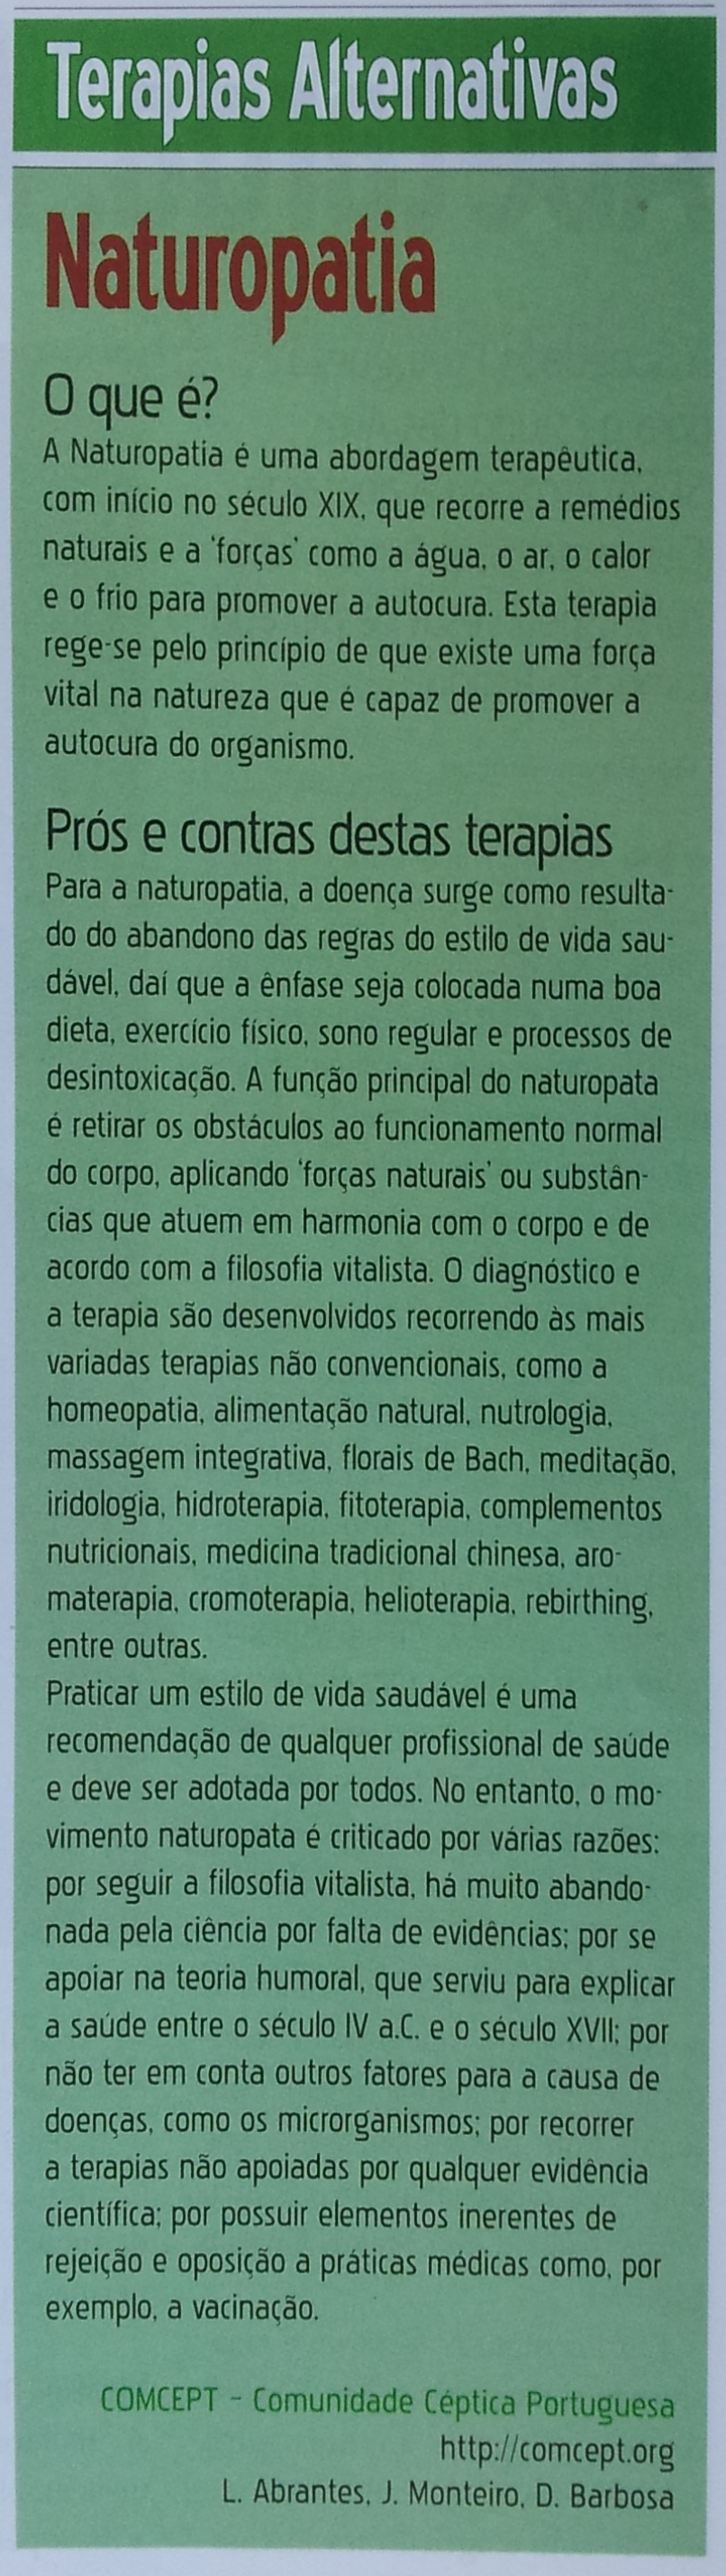 Naturopatia - Algarve Vivo